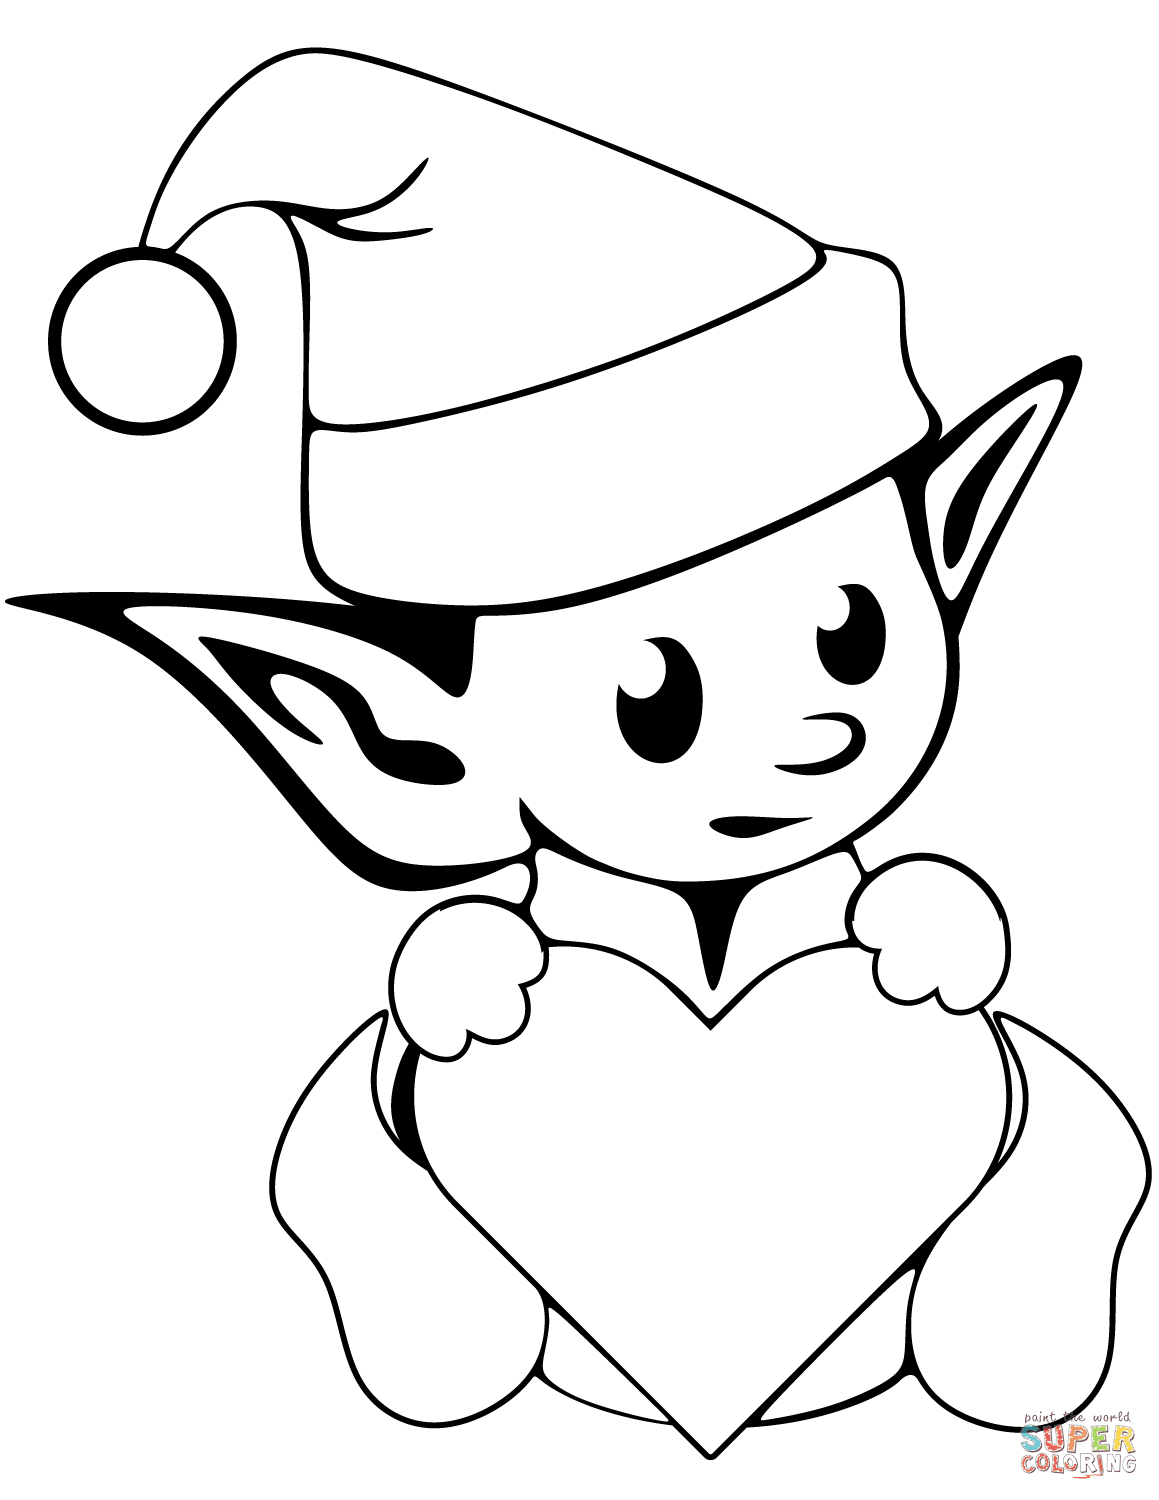 Free Printable Christmas Elves Coloring Pages With Cute Elf Page